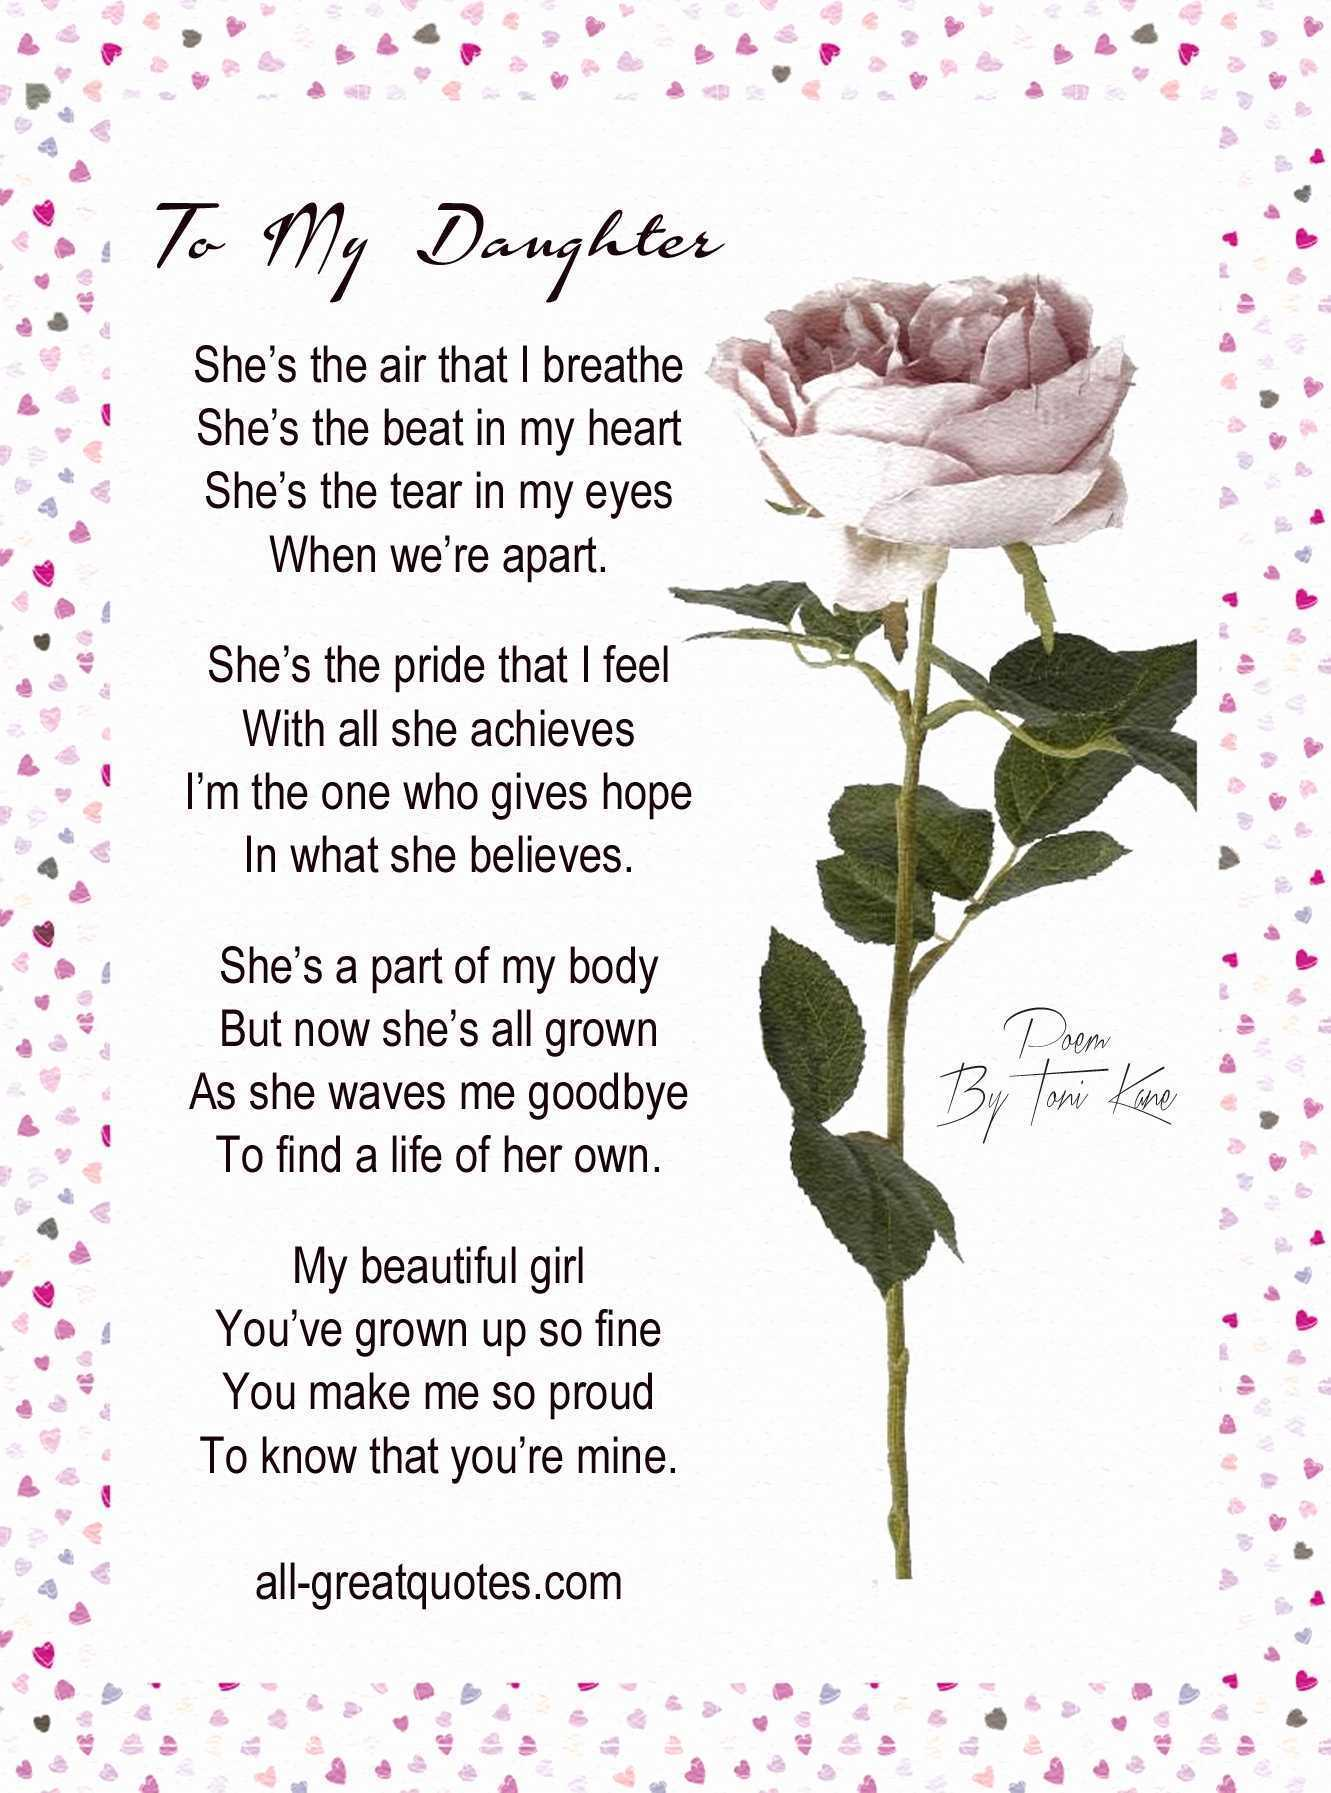 happy birthday baby girl ; happy-birthday-baby-girl-quotes-inspirational-happiness-quotes-beautiful-happy-birthday-baby-girl-of-happy-birthday-baby-girl-quotes